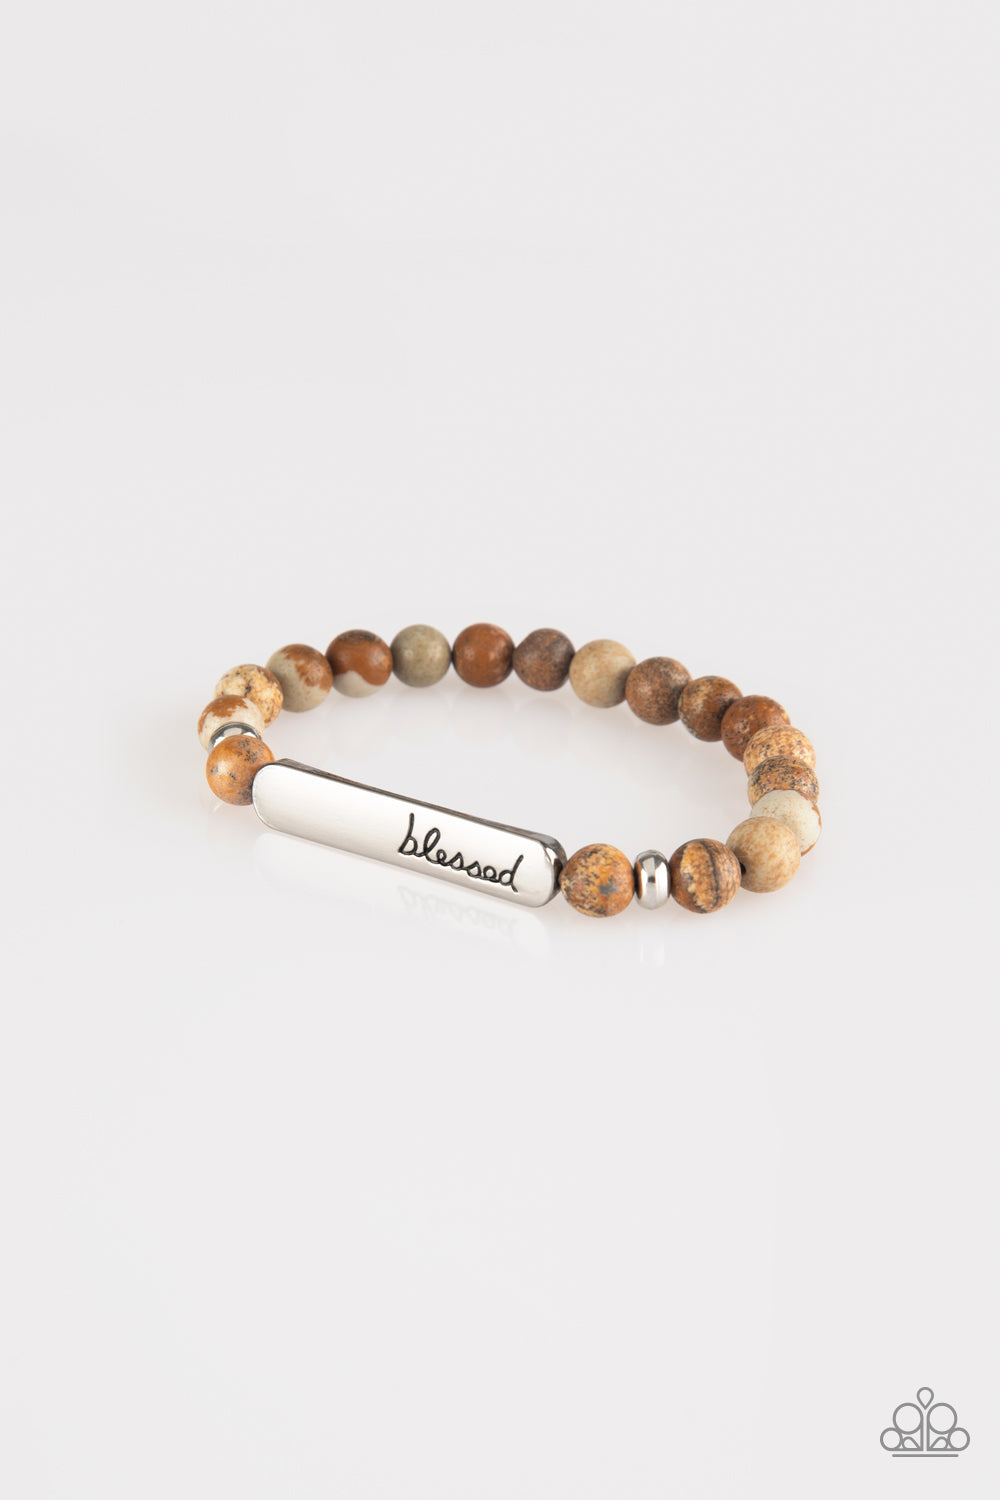 Paparazzi Accessories - Born Blessed - Brown Bracelets - JMJ Jewelry Collection